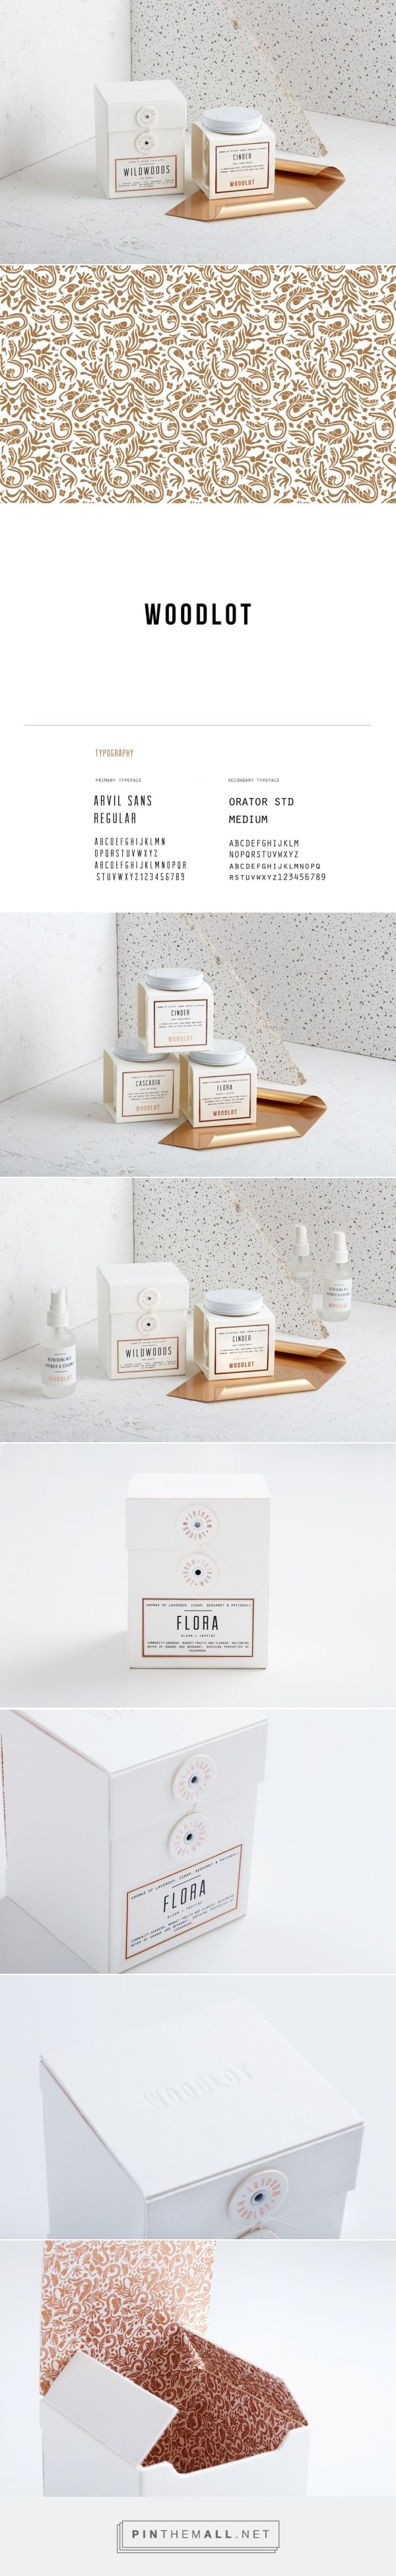 Woodlot Candle packaging design by arithmetic creative - http://www.packagingoftheworld.com/2017/06/woodlot-candle.html